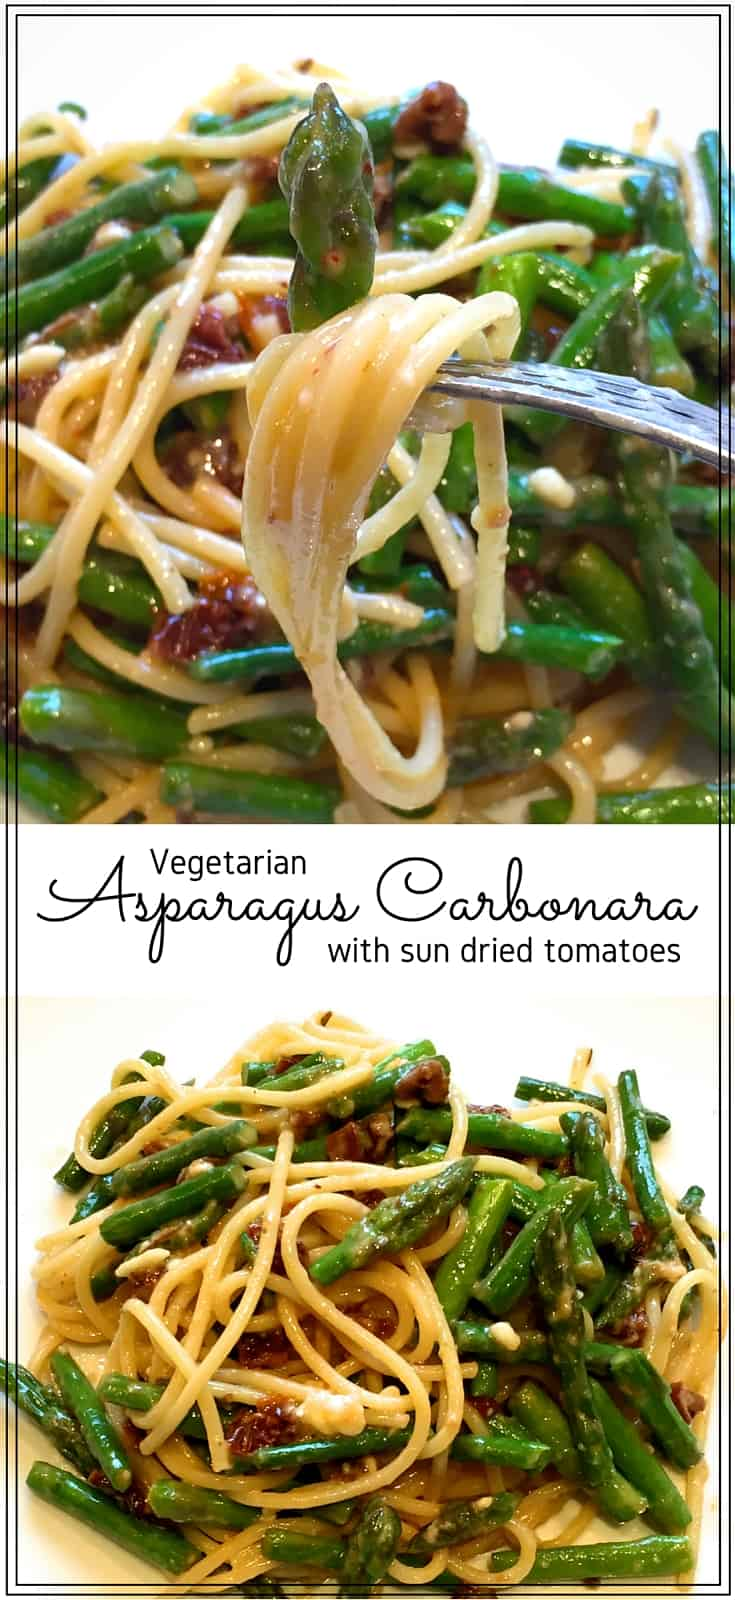 Asparagus carbonara - Rich & tasty, this quick & easy pasta dinner is a delicious way to use fresh, seasonal asparagus. Savoury sun dried tomatoes make this a vegetarian treat.